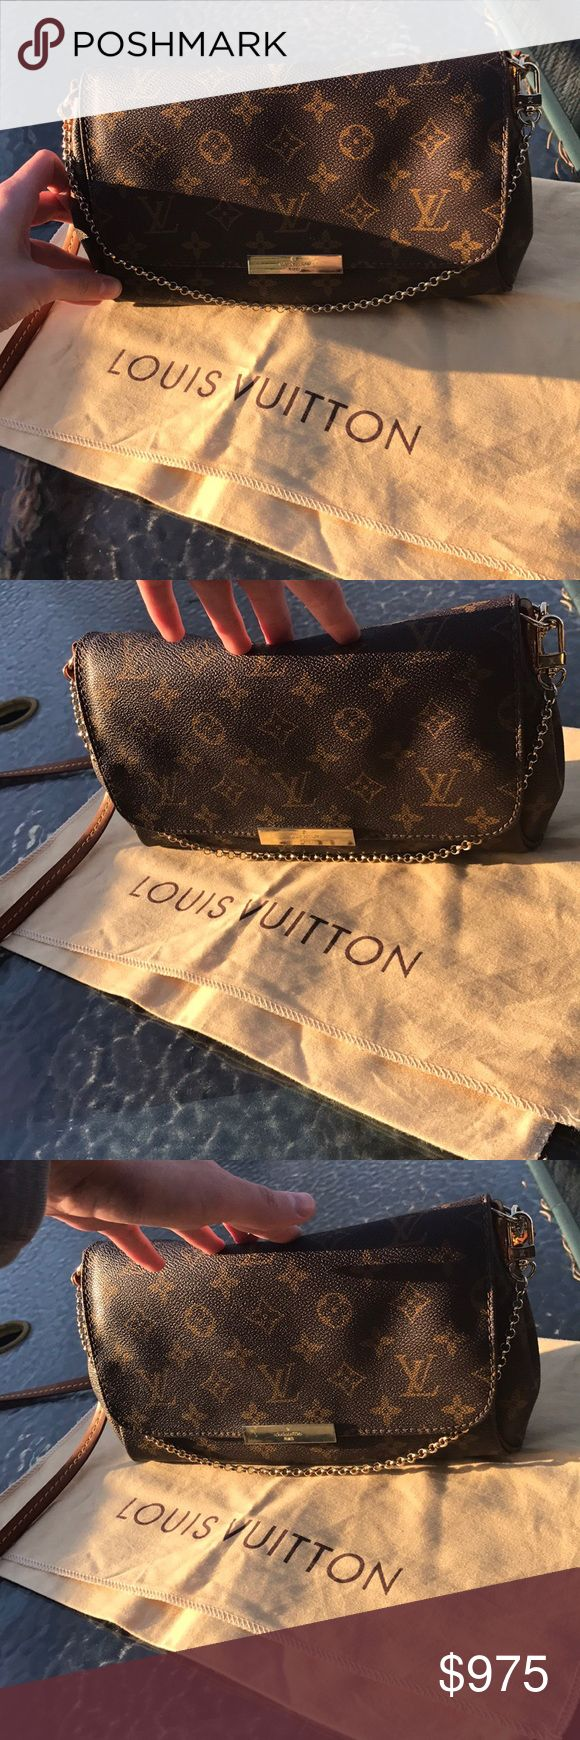 Louis Vuitton Favorite PM Monogram Bag Great condition Louis Vuitton favorite PM bag in the Monogram canvas. Minor wear, hardly noticeable. Comes with the dustbag, box, and original Louis Vuitton shopping bag. Thanks for looking! No trades Louis Vuitton Bags